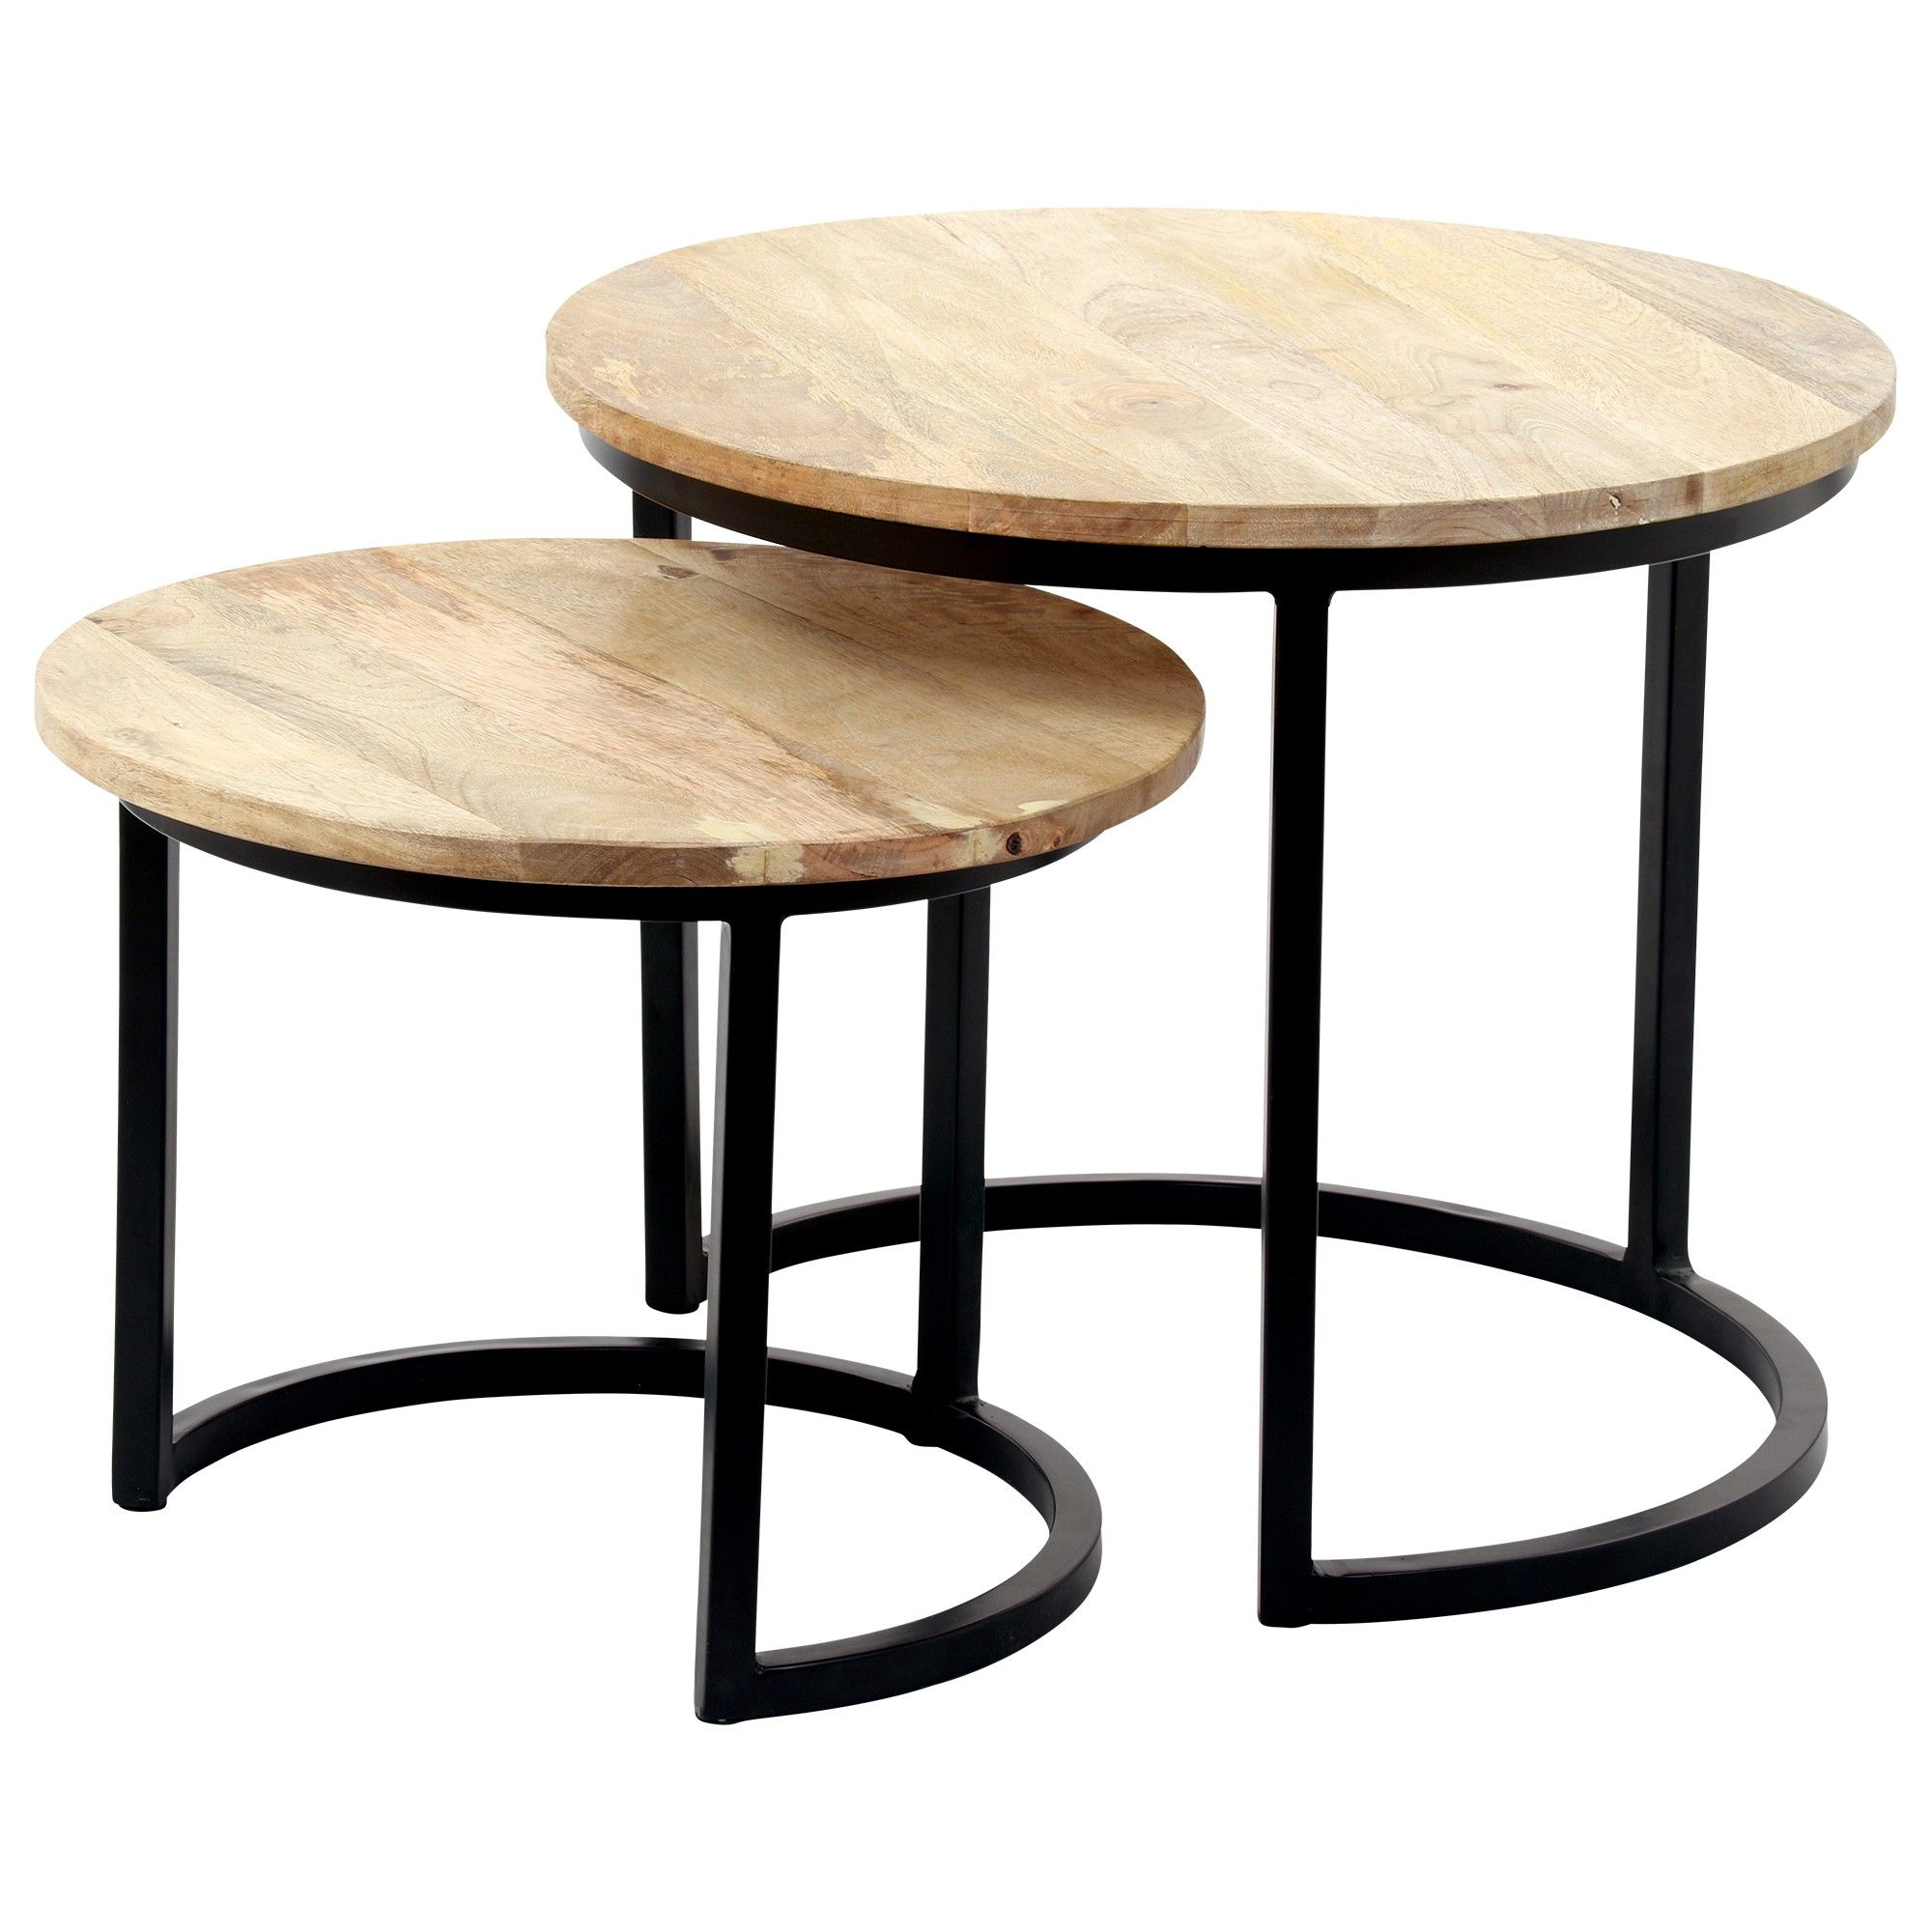 Kindred Wood Nesting Tables Coffee Table